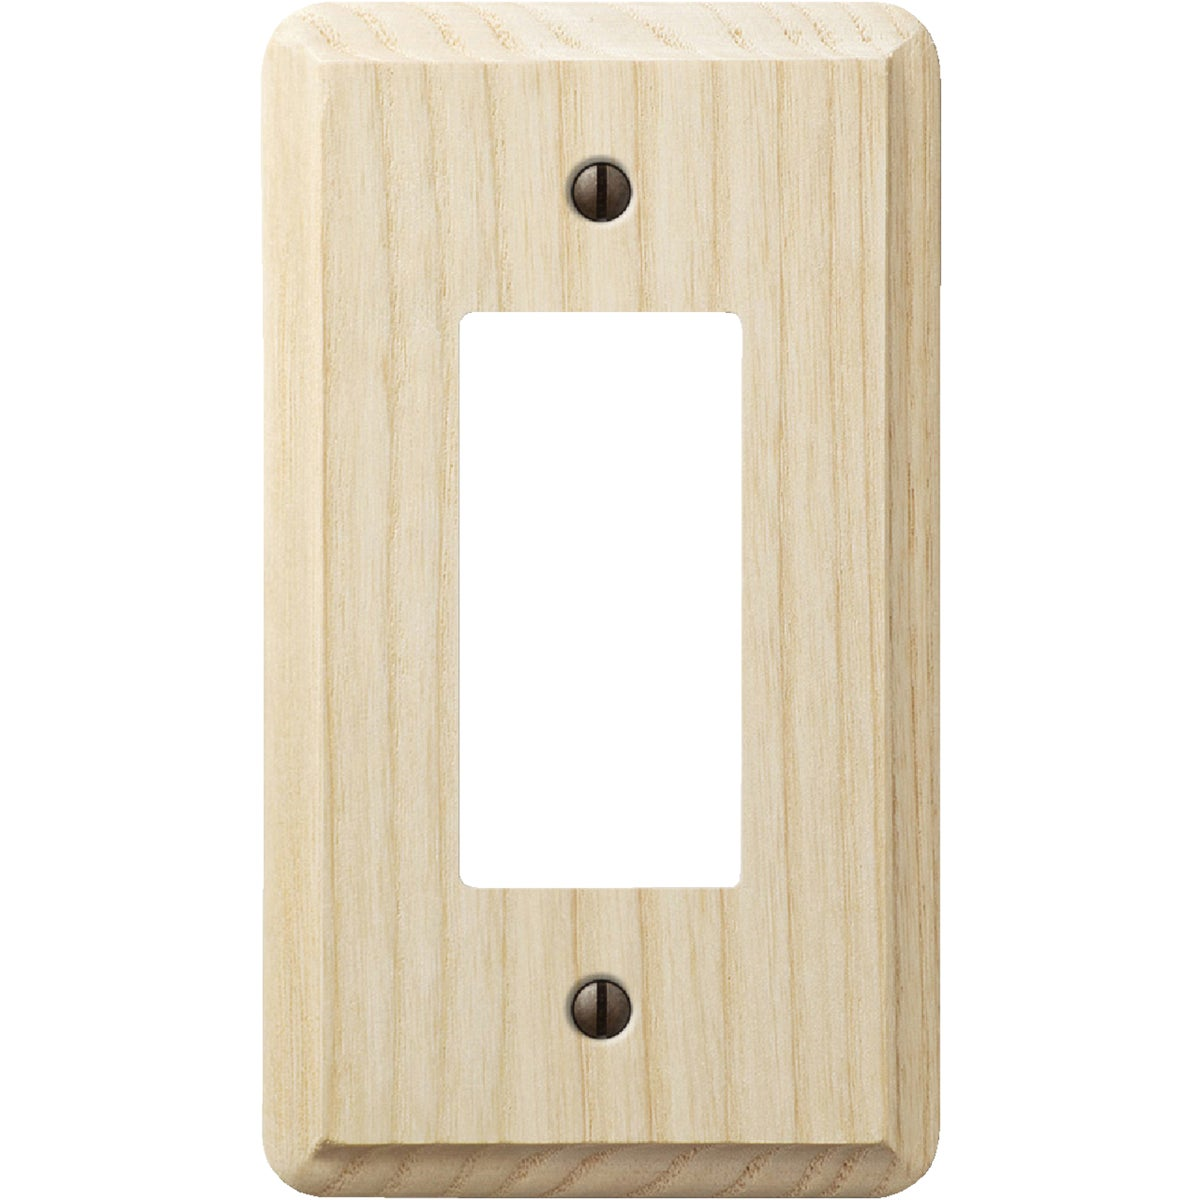 UNFD ASH GFI WALL PLATE - 417U by Jackson Deerfield Mf